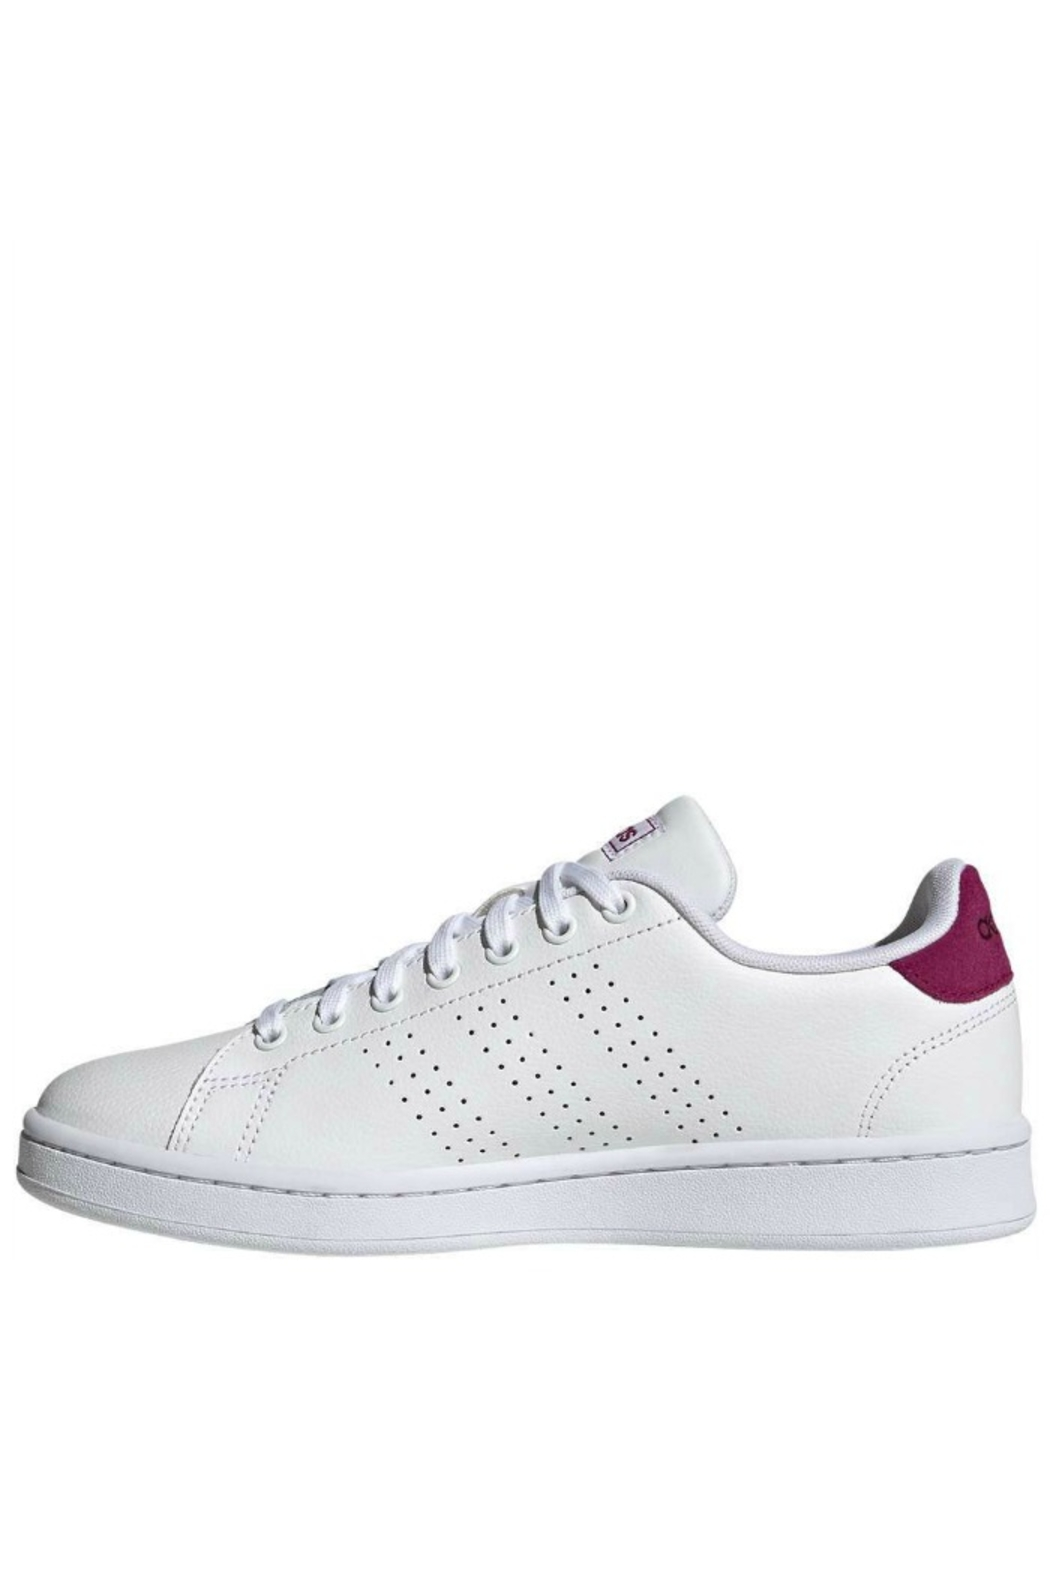 adidas Women's Adidas Advantage in White/Powder Berry - Front Full Image